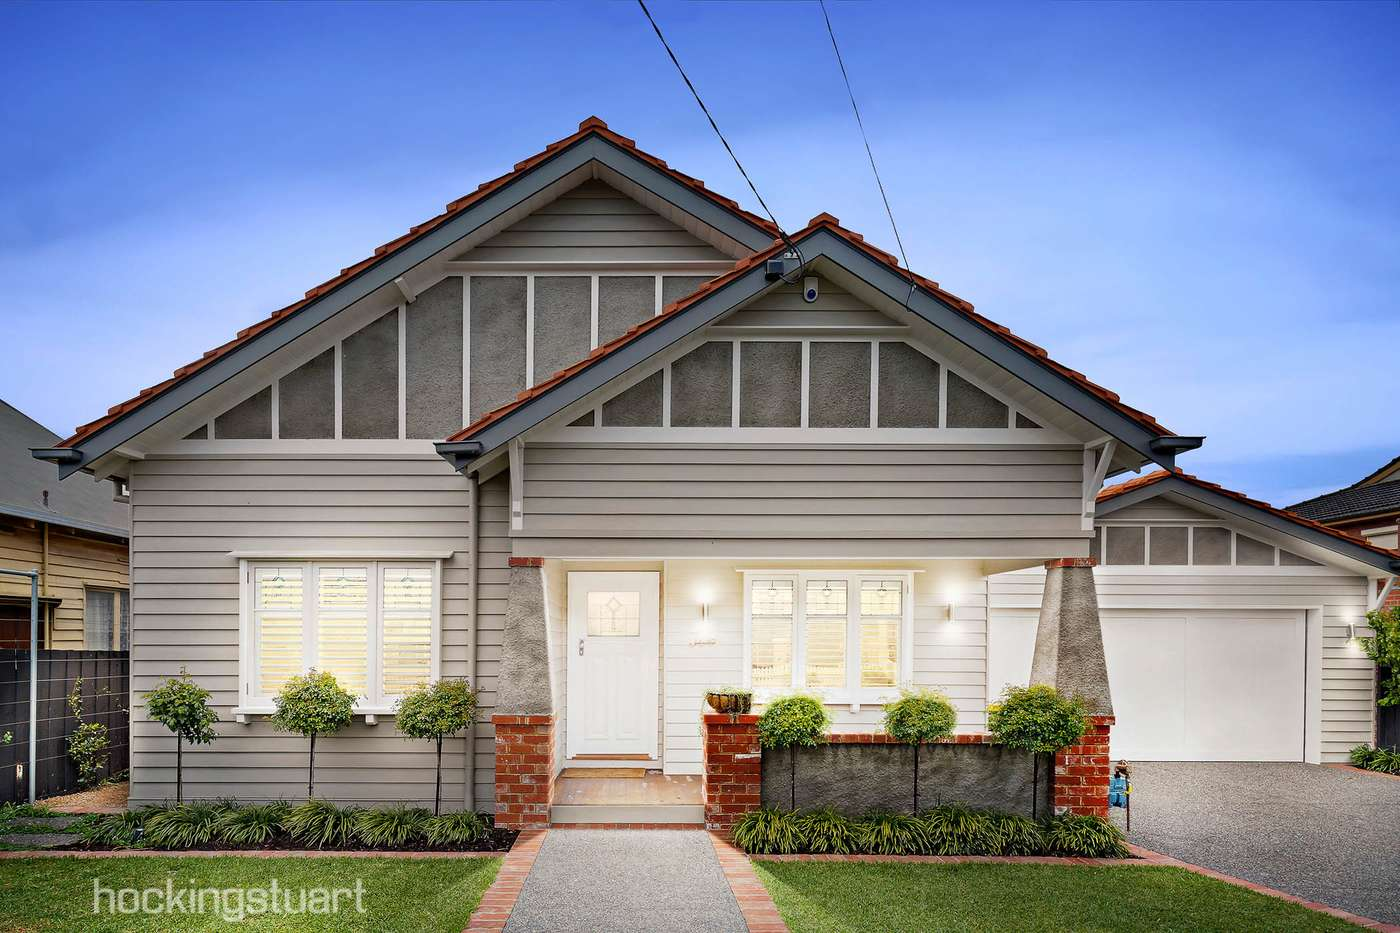 Main view of Homely house listing, 2 Lascelles Street, Coburg, VIC 3058